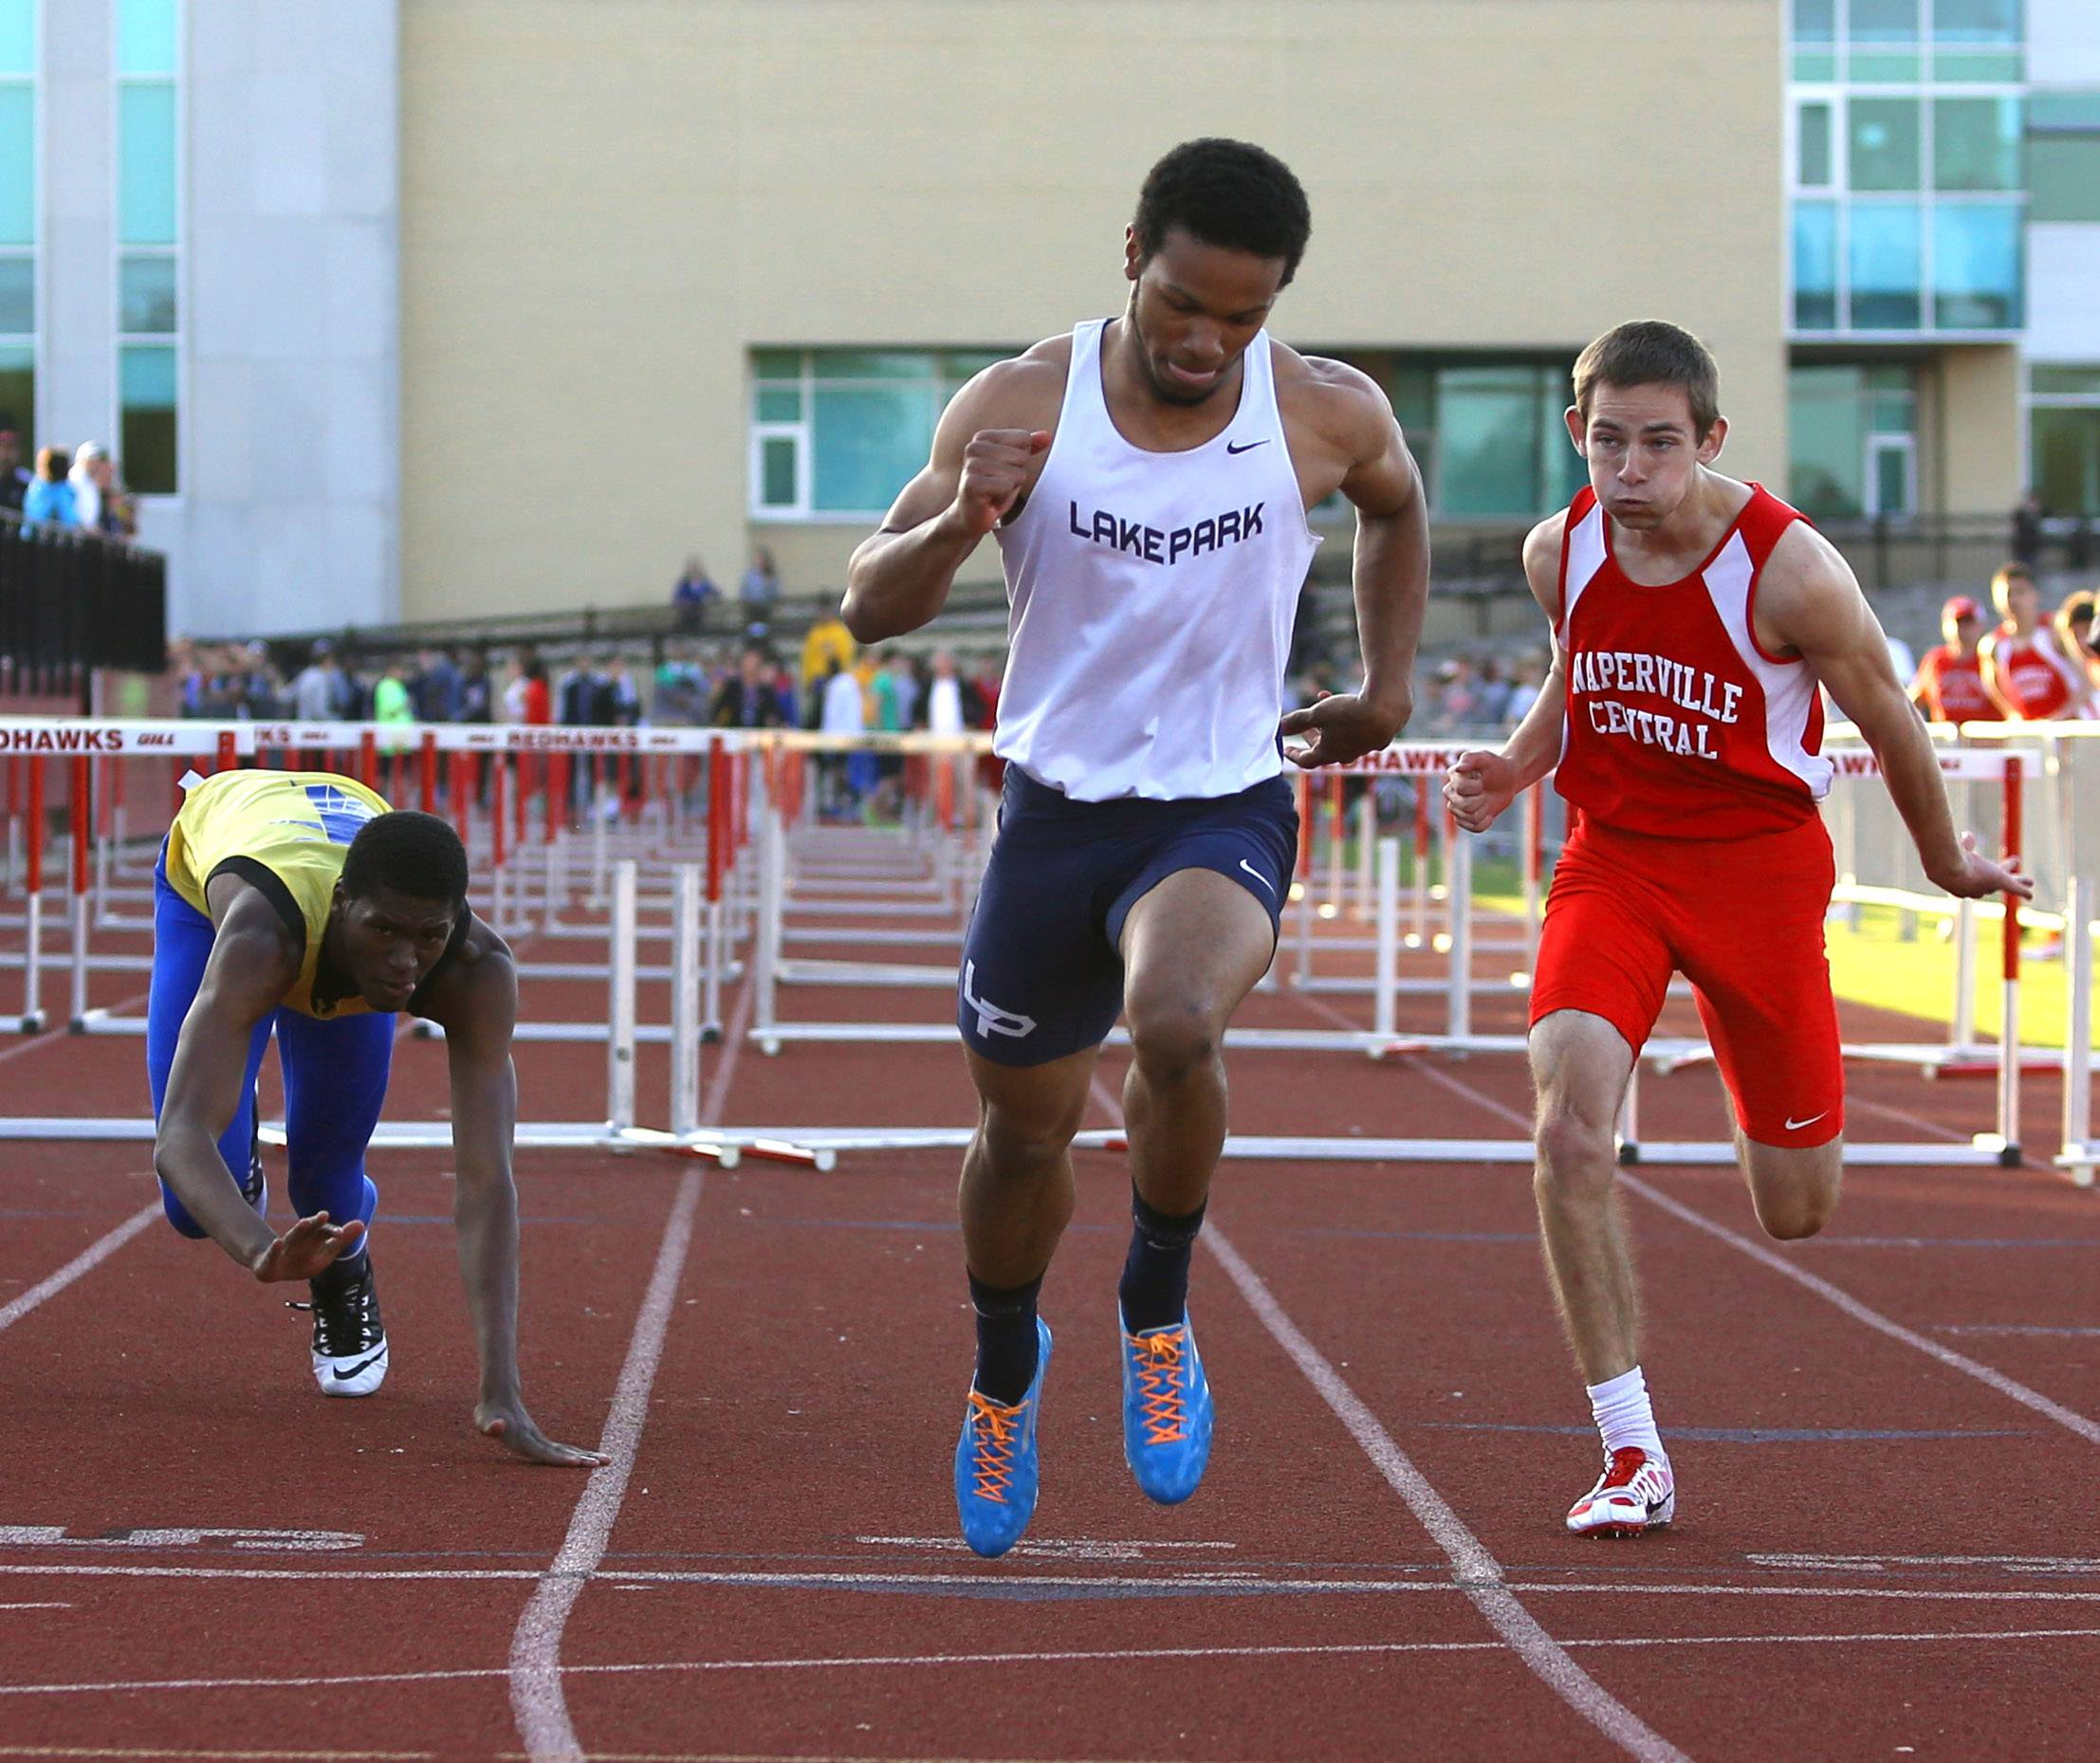 Lake Park's Antonio Shenault wins the 110-meter hurdles during the DuPage County boys track meet Friday. Wheaton North's Steven Connor, left, and Naperville Central's Michael Jopes, right, also raced.